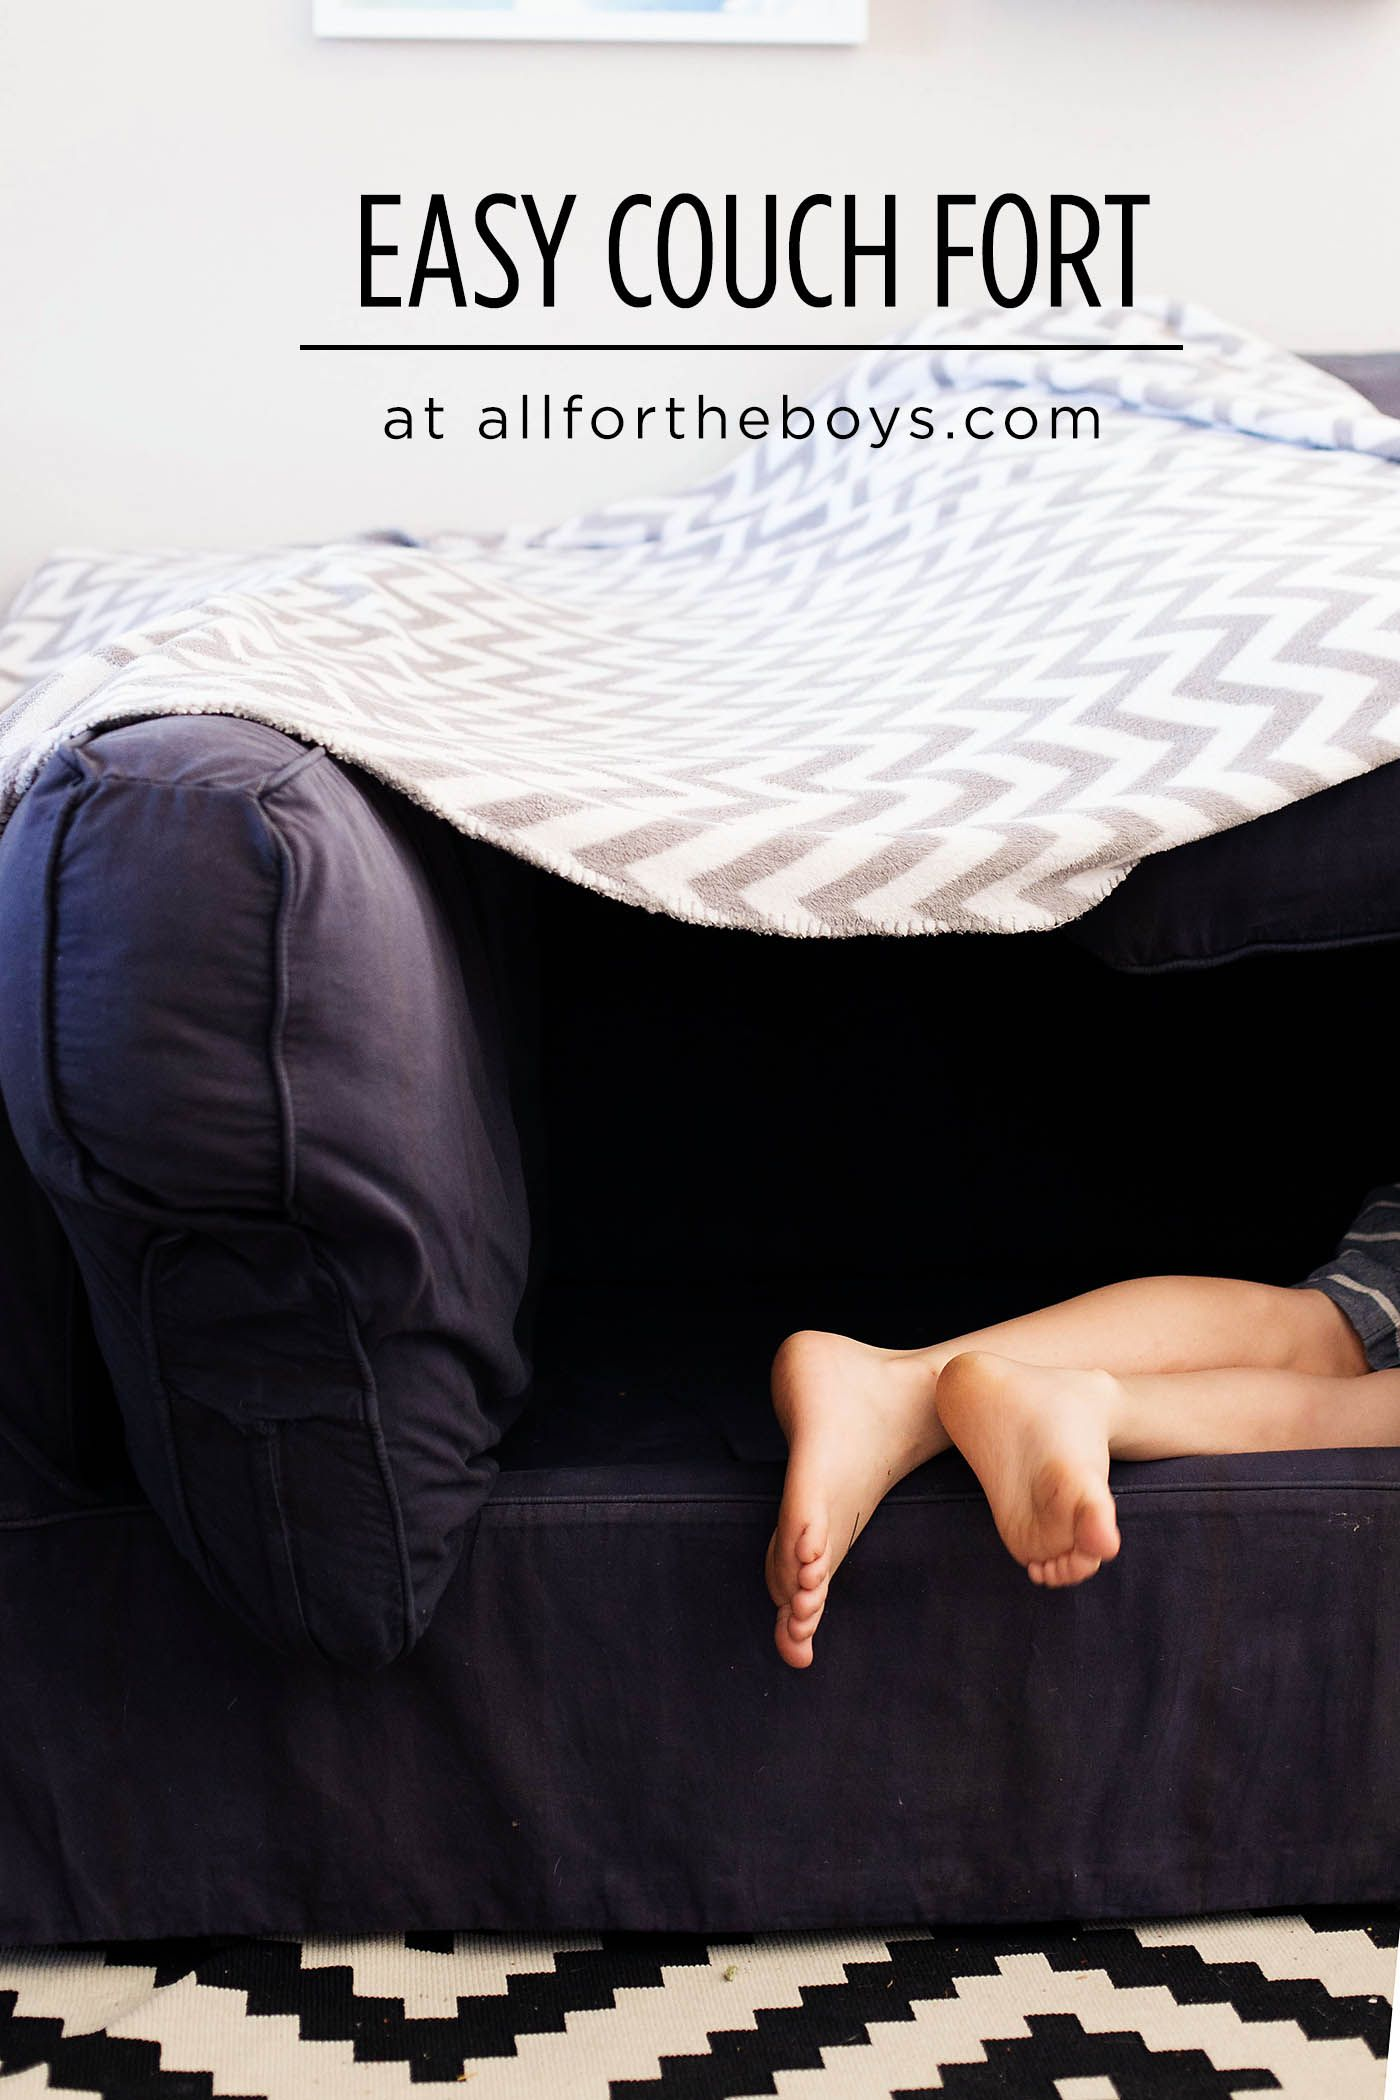 Easy couch fort built in couch couch activities for kids